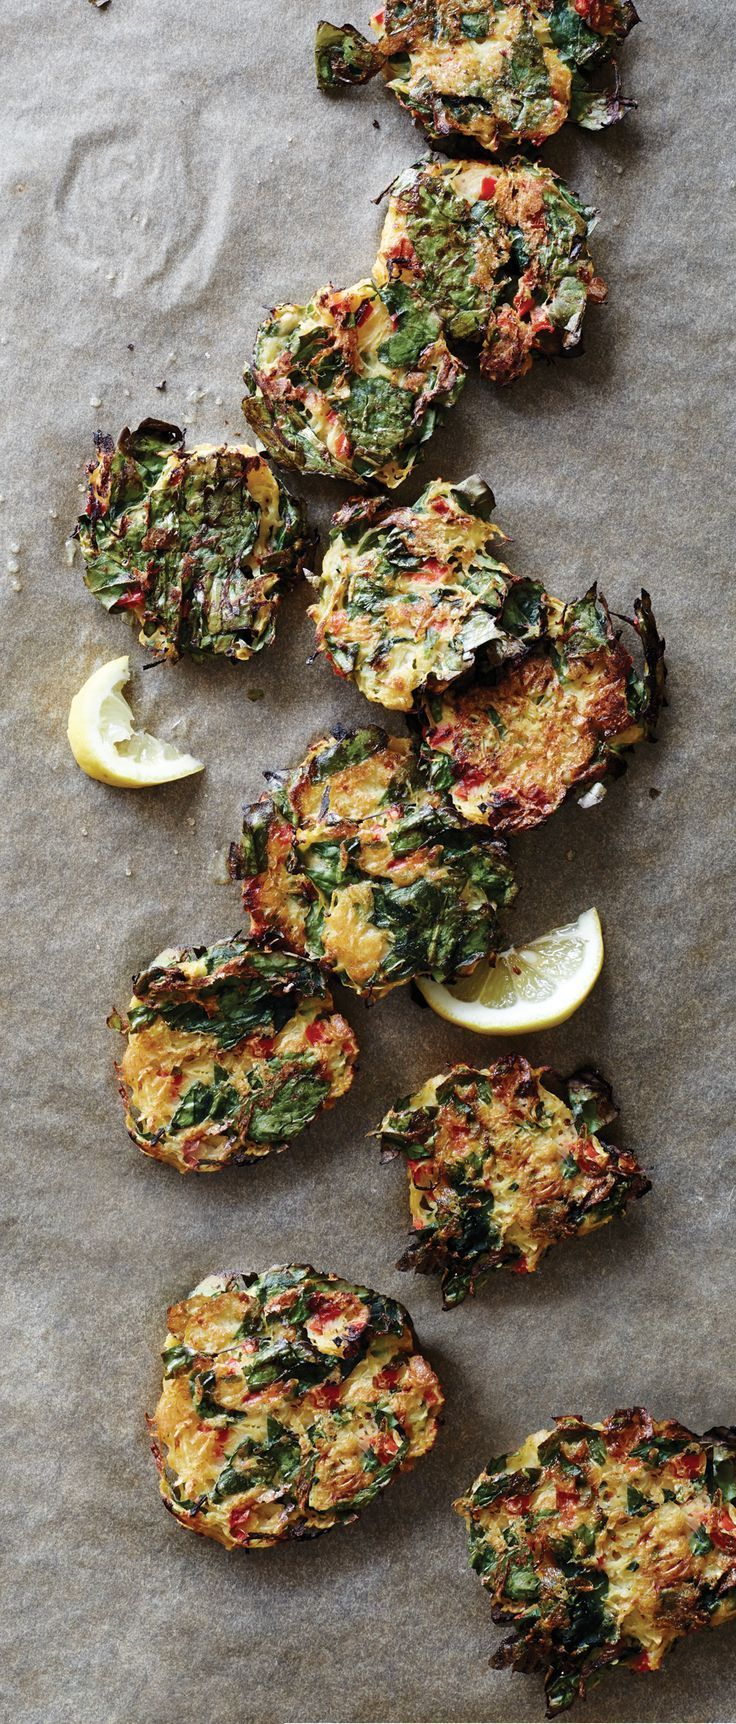 A lightly spicy combination of spinach and spaghetti squash is shaped into crisp oven-baked fritters.